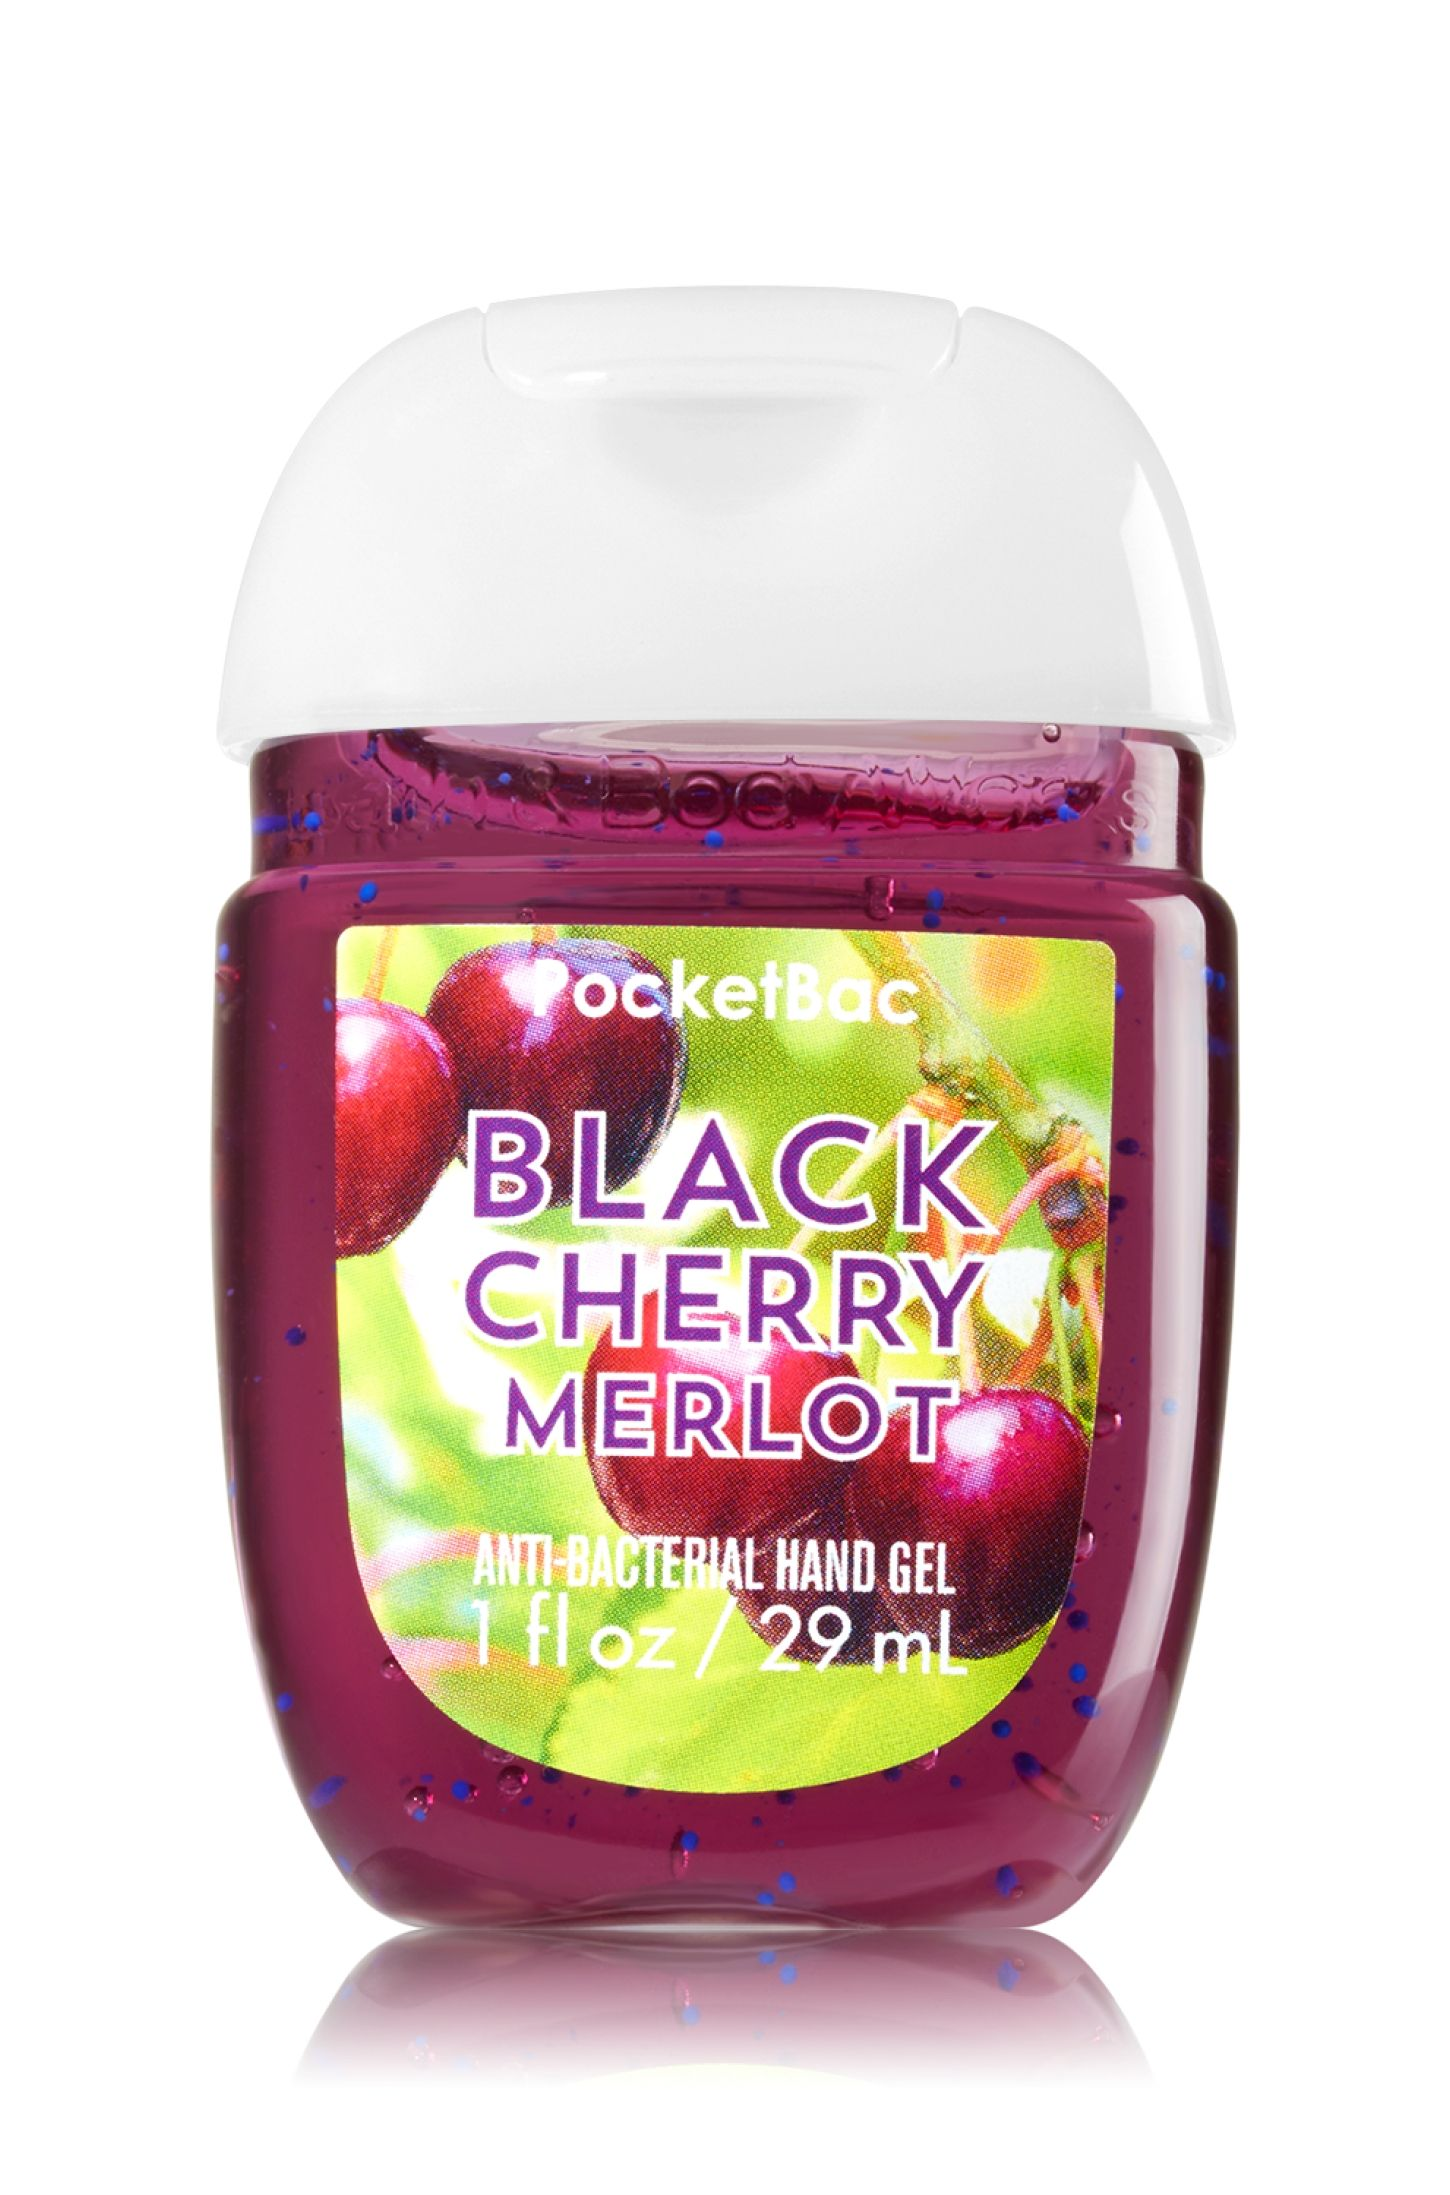 Black Cherry Merlot Pocketbac Sanitizing Hand Gel Soap Sanitizer